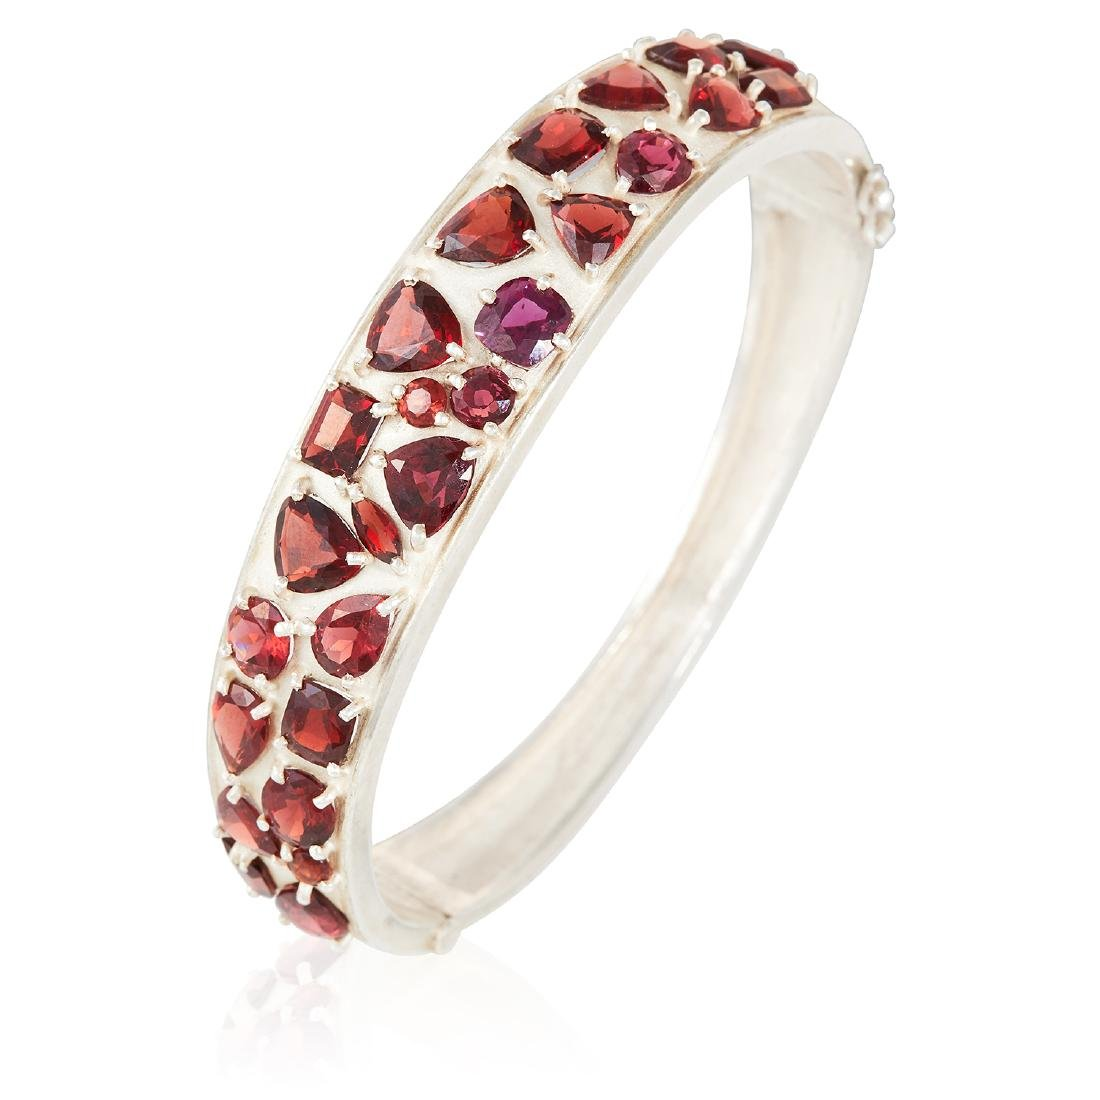 A GARNET BANGLE in sterling silver, set with round,